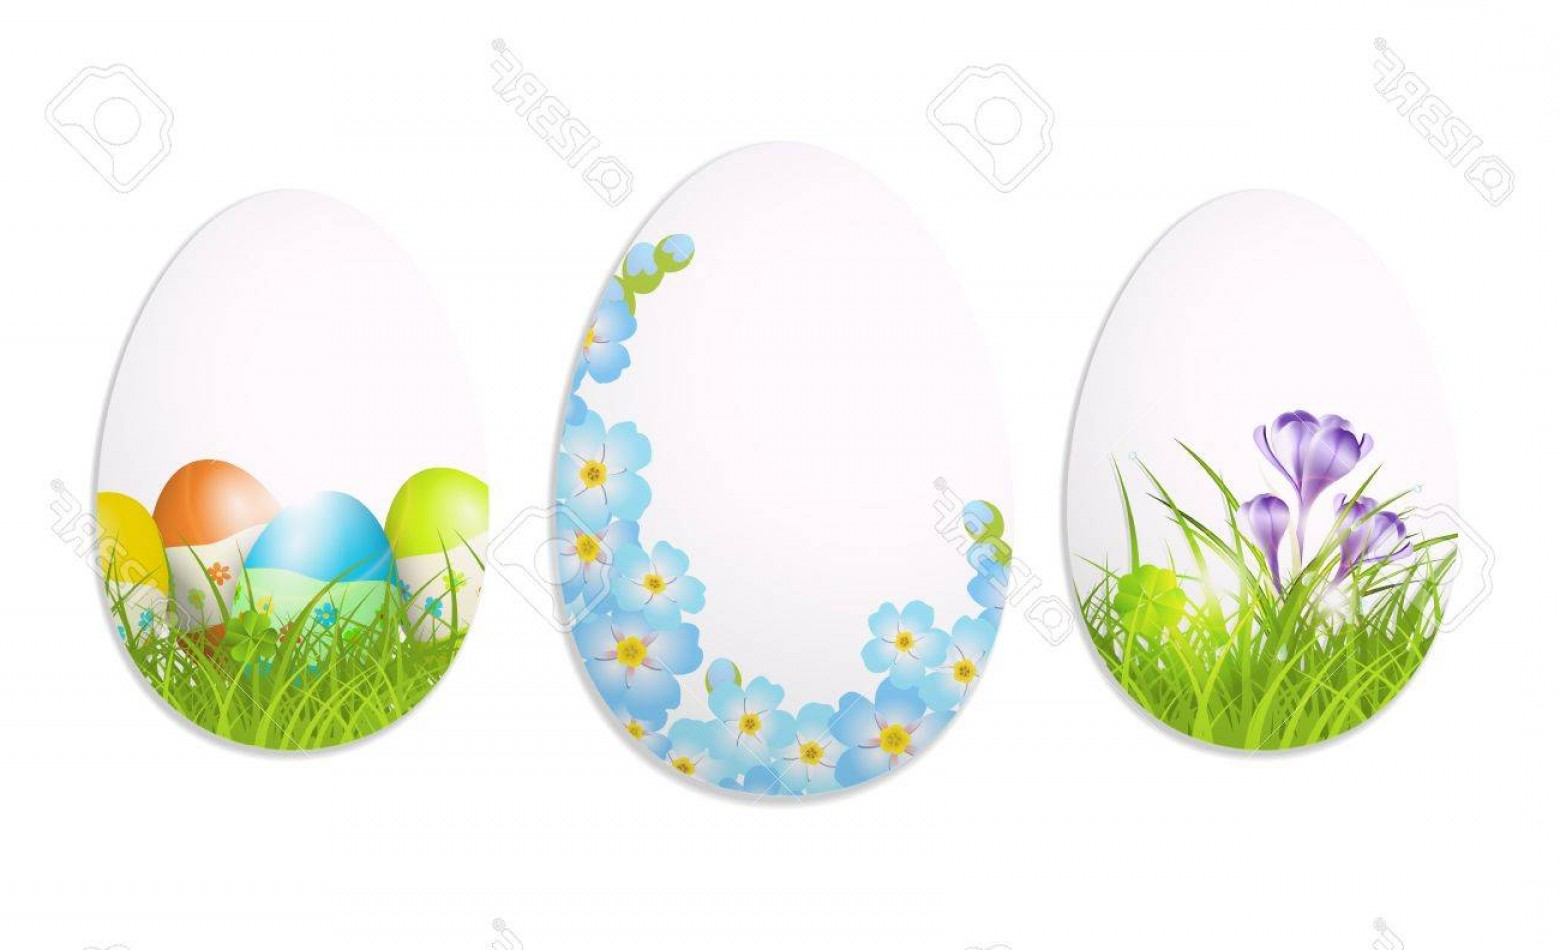 Easter Vector Art No Background: Photoabstract Easter Eggs On White Background Illustration With Transparency And Gradient Meshes